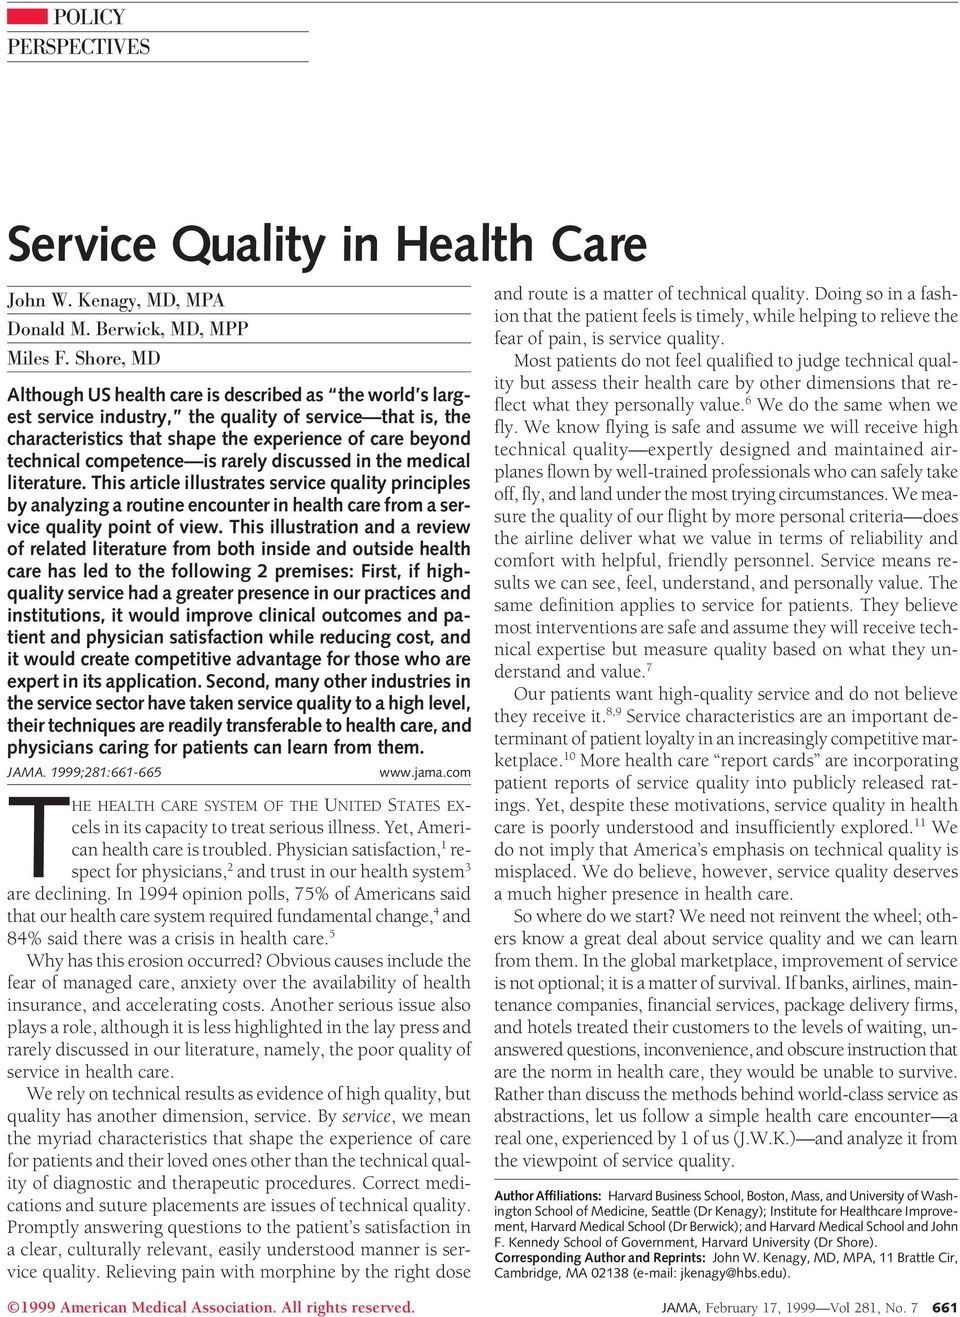 competence is rarely discussed in the medical literature. This article illustrates service quality principles by analyzing a routine encounter in health care from a service quality point of view.